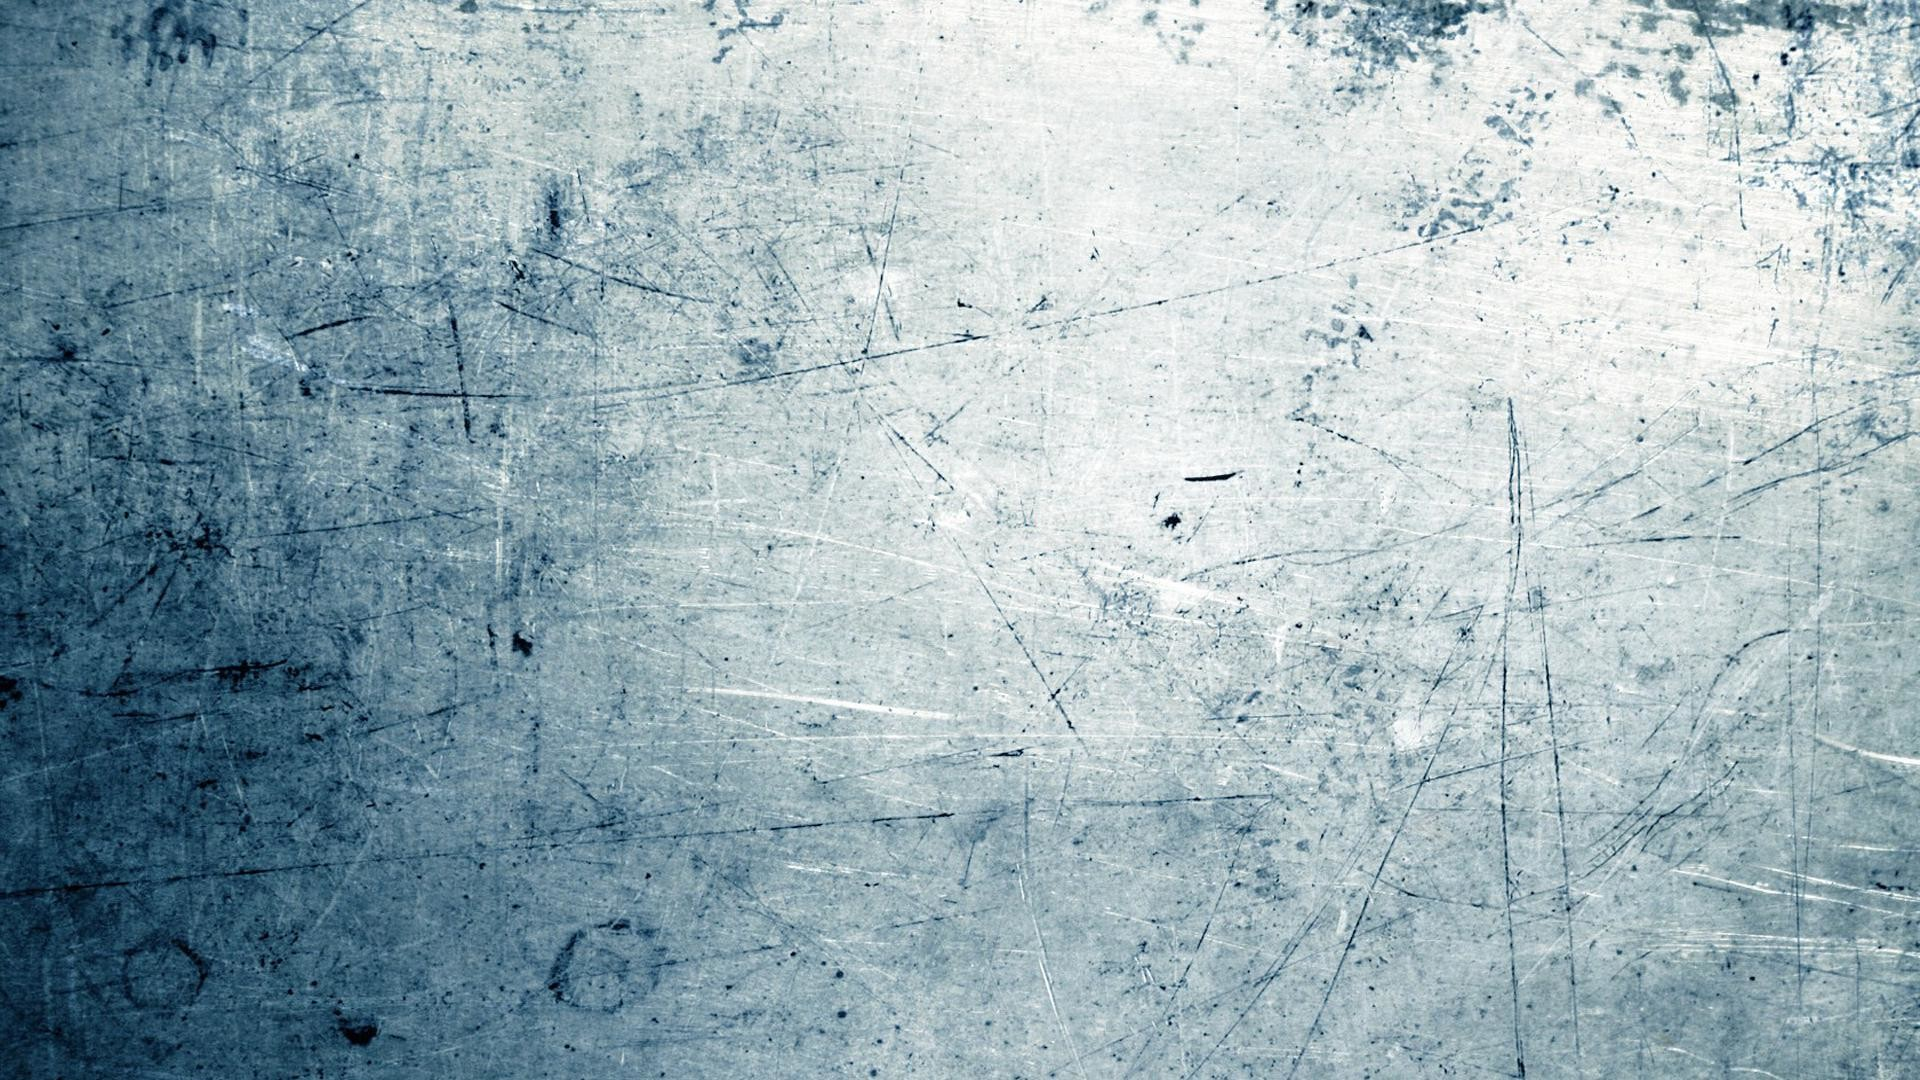 Res: 1920x1080, Texture Wallpapers 9 - 1920 X 1080